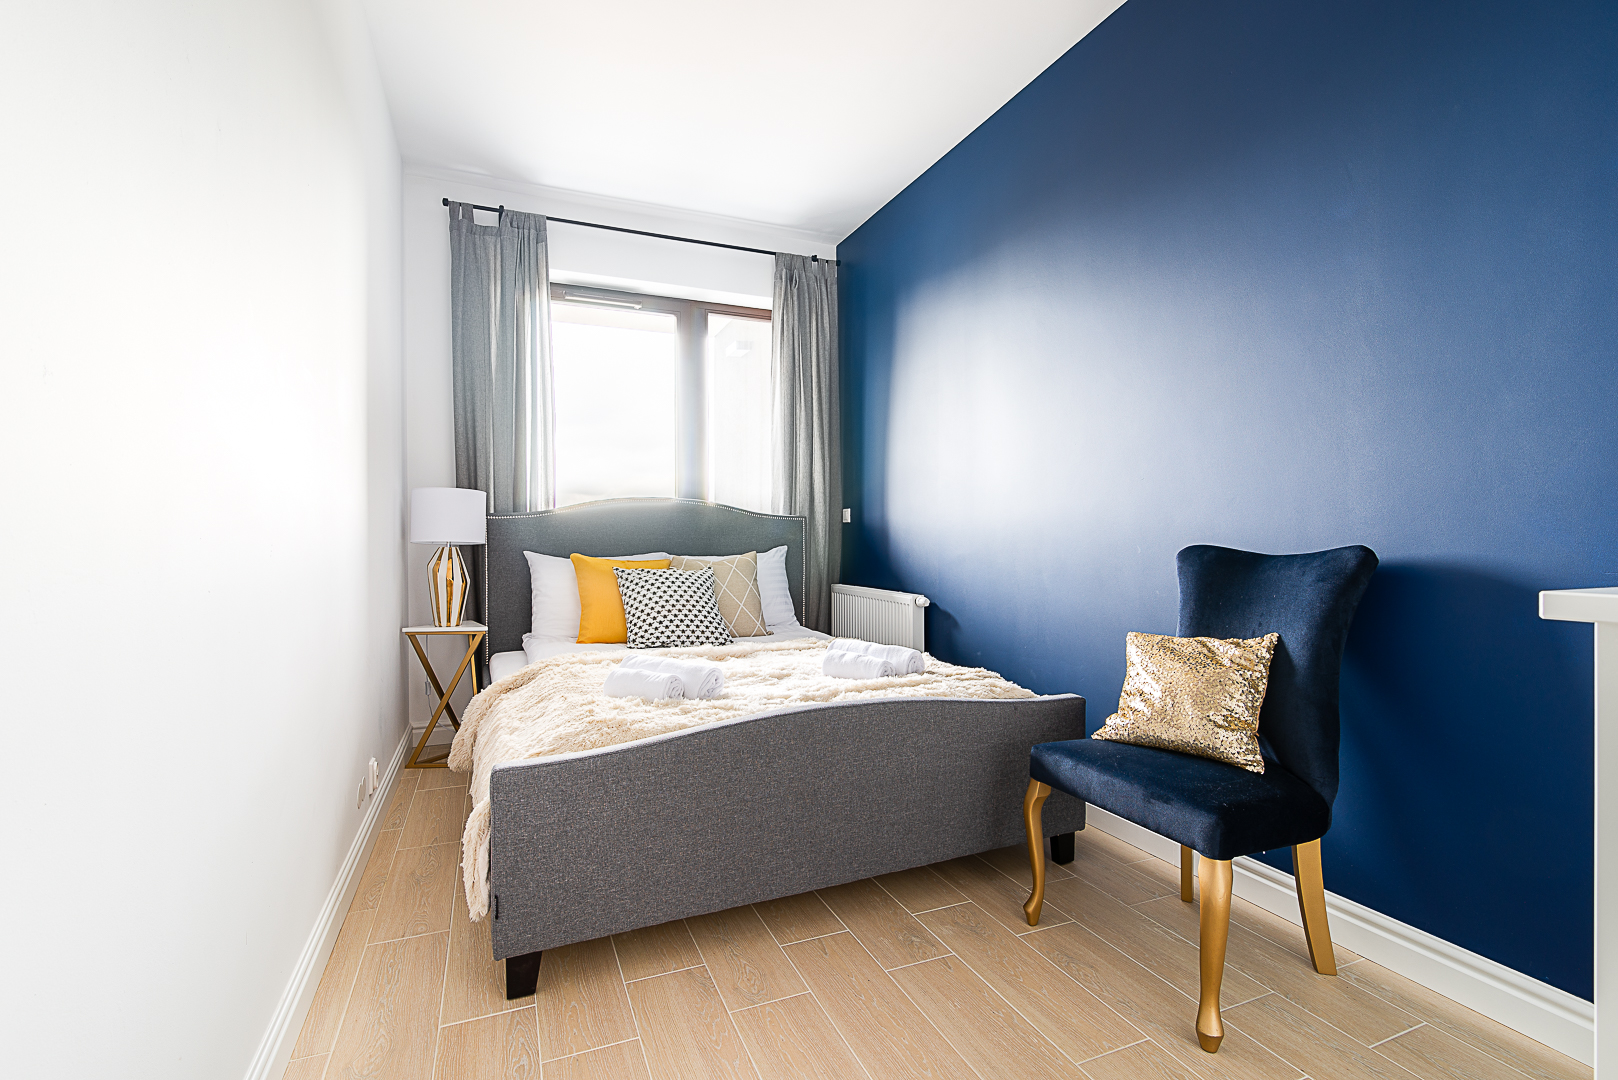 Stylish bedroom at Klopot Apartments